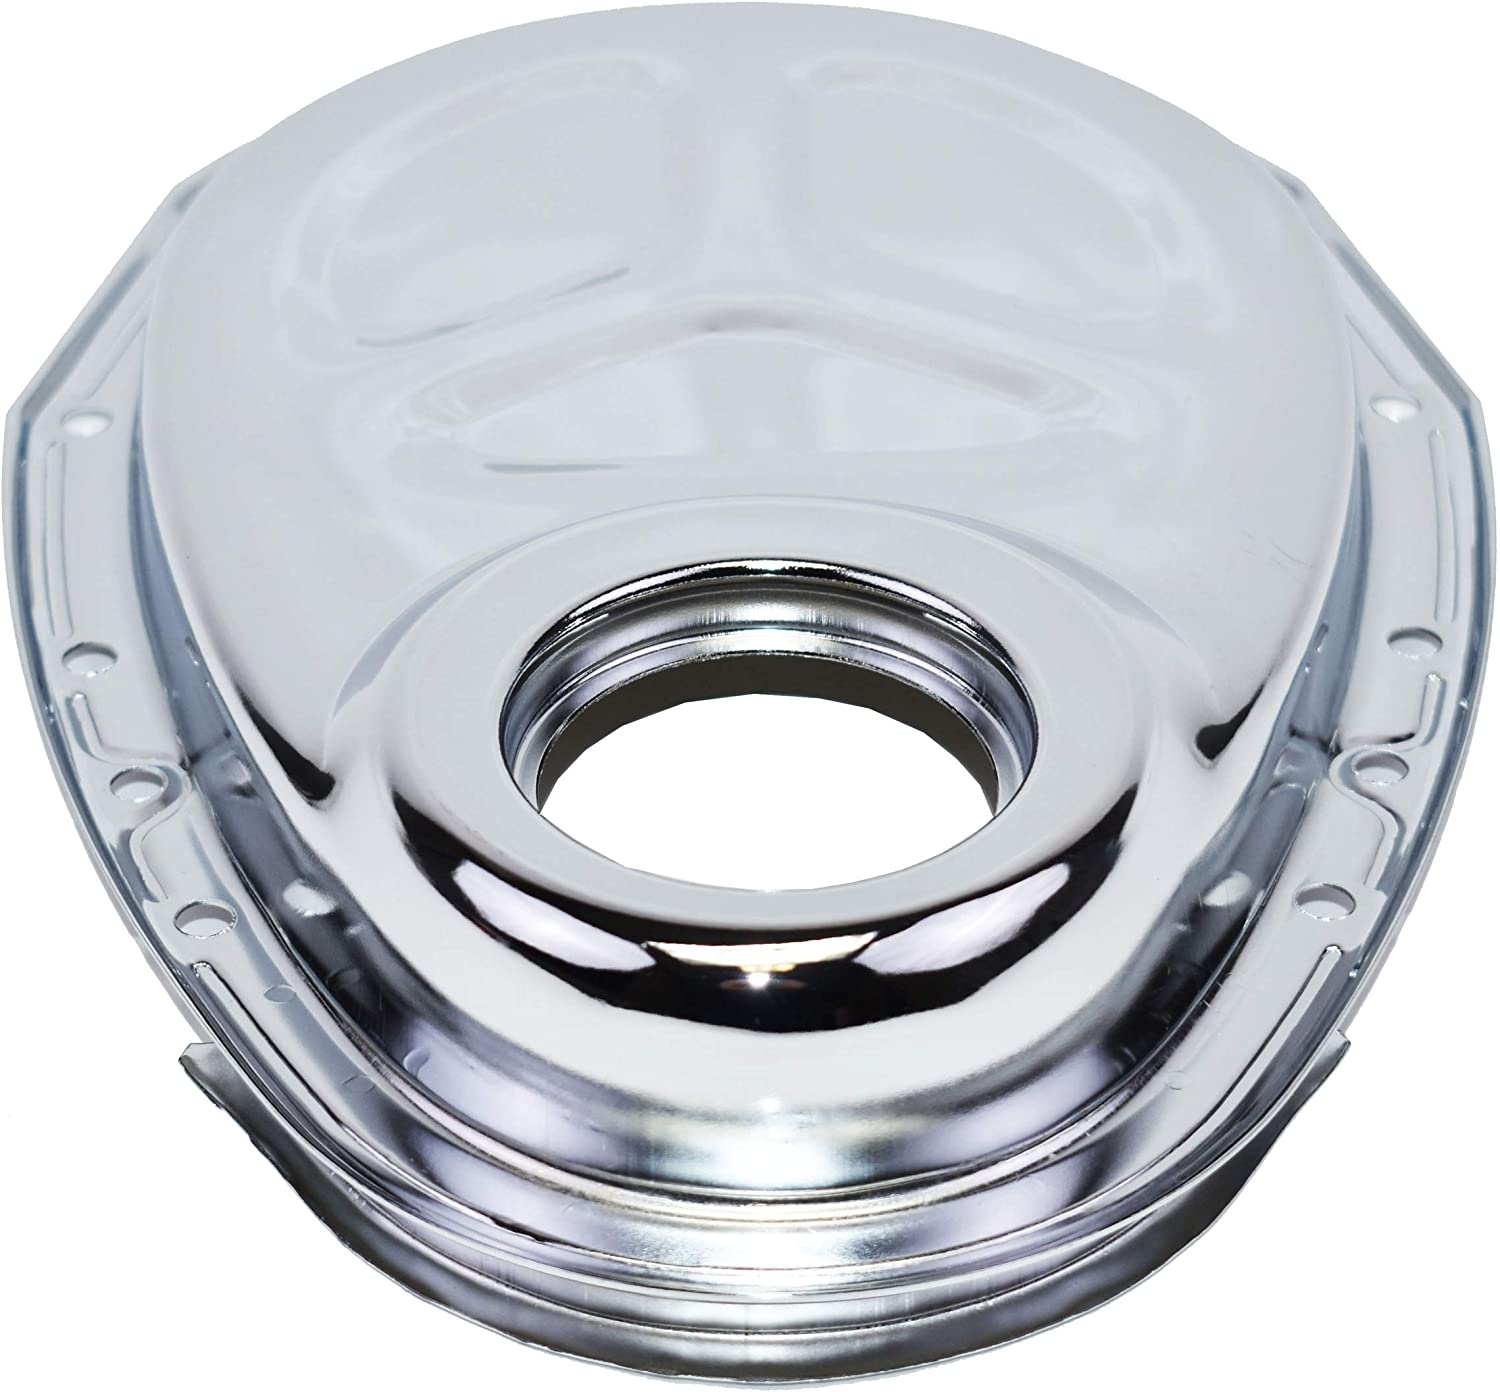 A-Team Performance Timing Cover Kit Compatible With V8 Small Block SBC Chevy/267 283 302 305 307 327 350 383 400